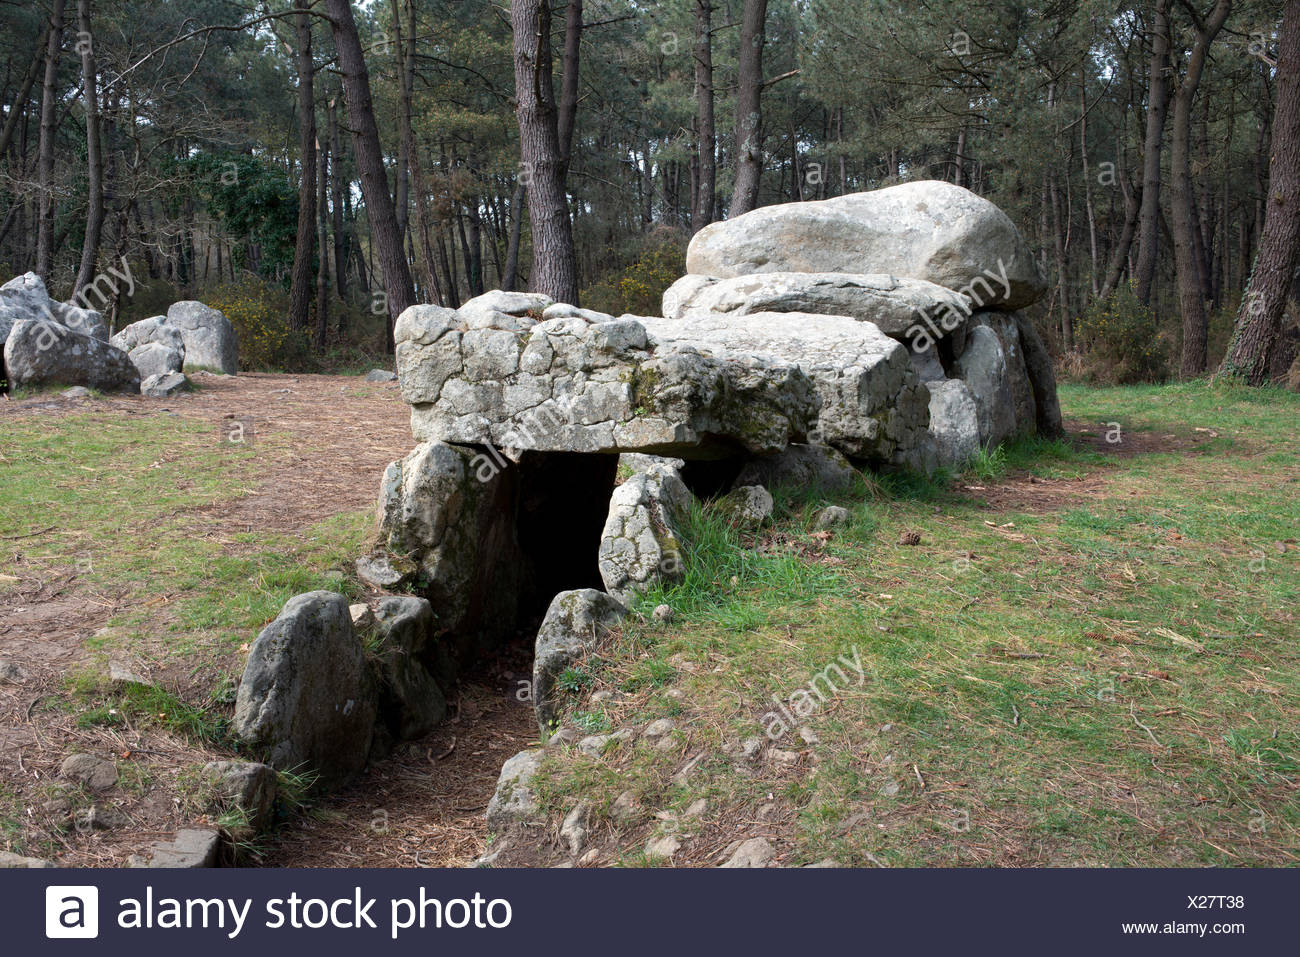 Dolmen, portal tomb, portal grave, in a wooded area in Mané-Kerioned, Carnac, Département Morbihan, Brittany, France, Europe - Stock Image